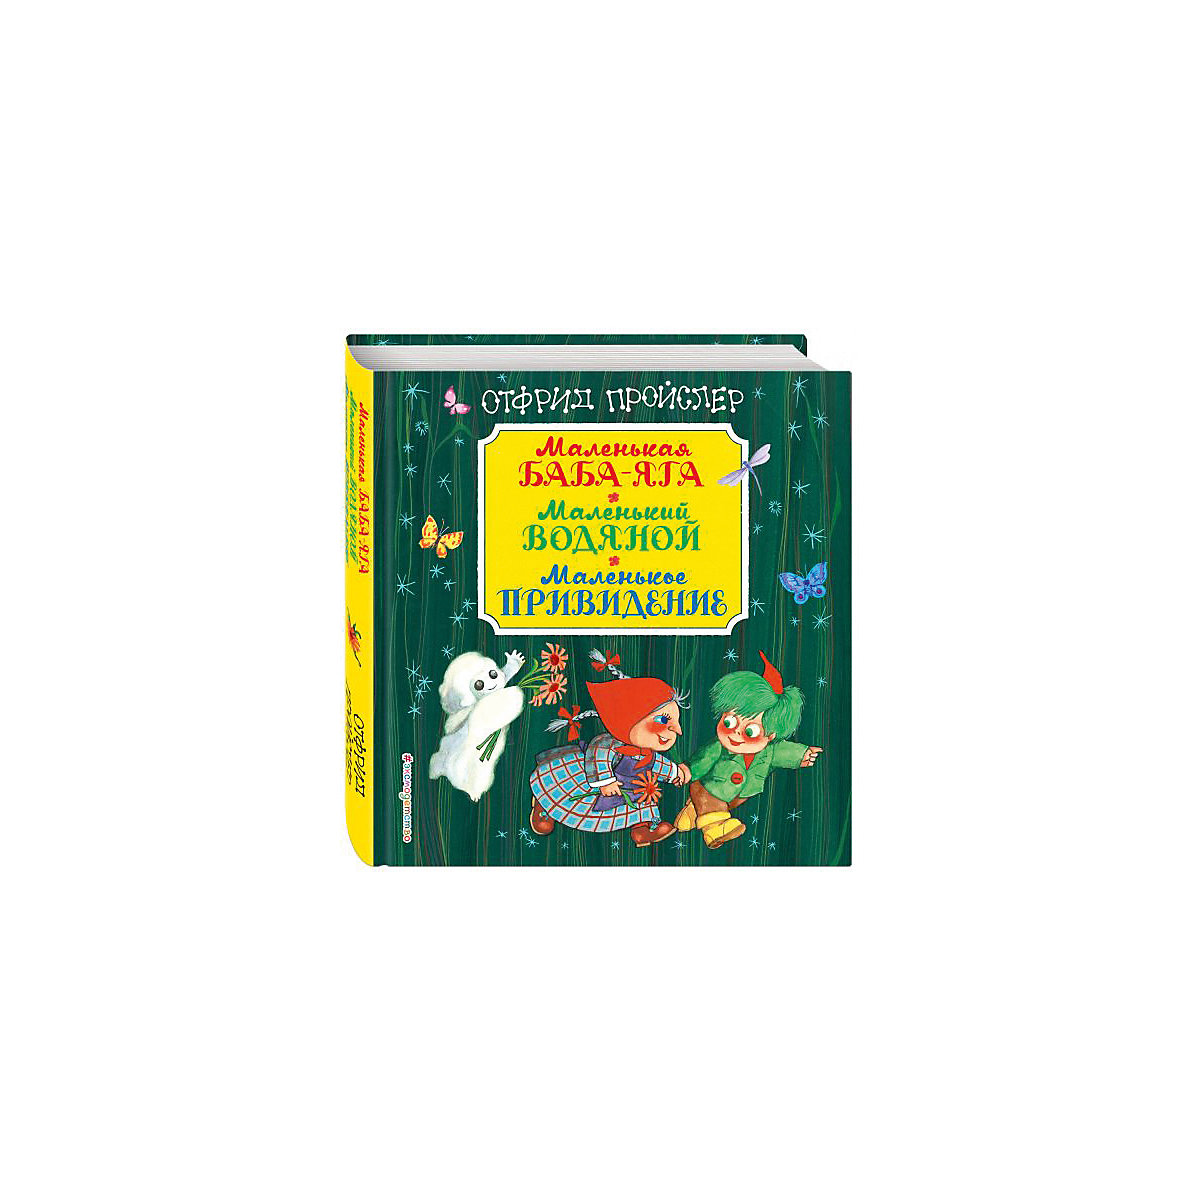 Books EKSMO 8361078 Children Education Encyclopedia Alphabet Dictionary Book For Baby MTpromo